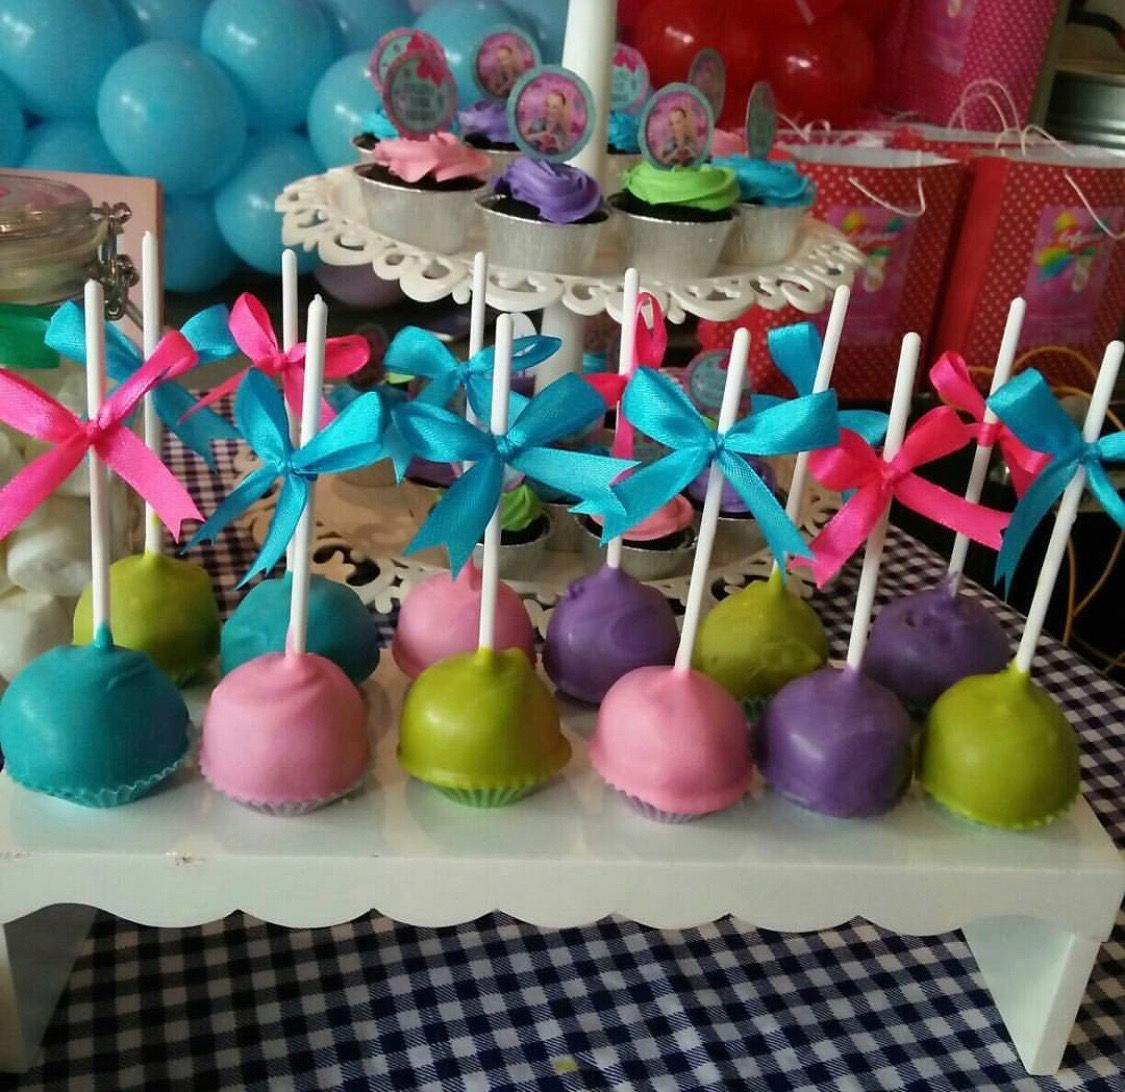 Examples of Pink, Purple, Blue, and Green JoJo Siwa Cake Pops with Bows Attached